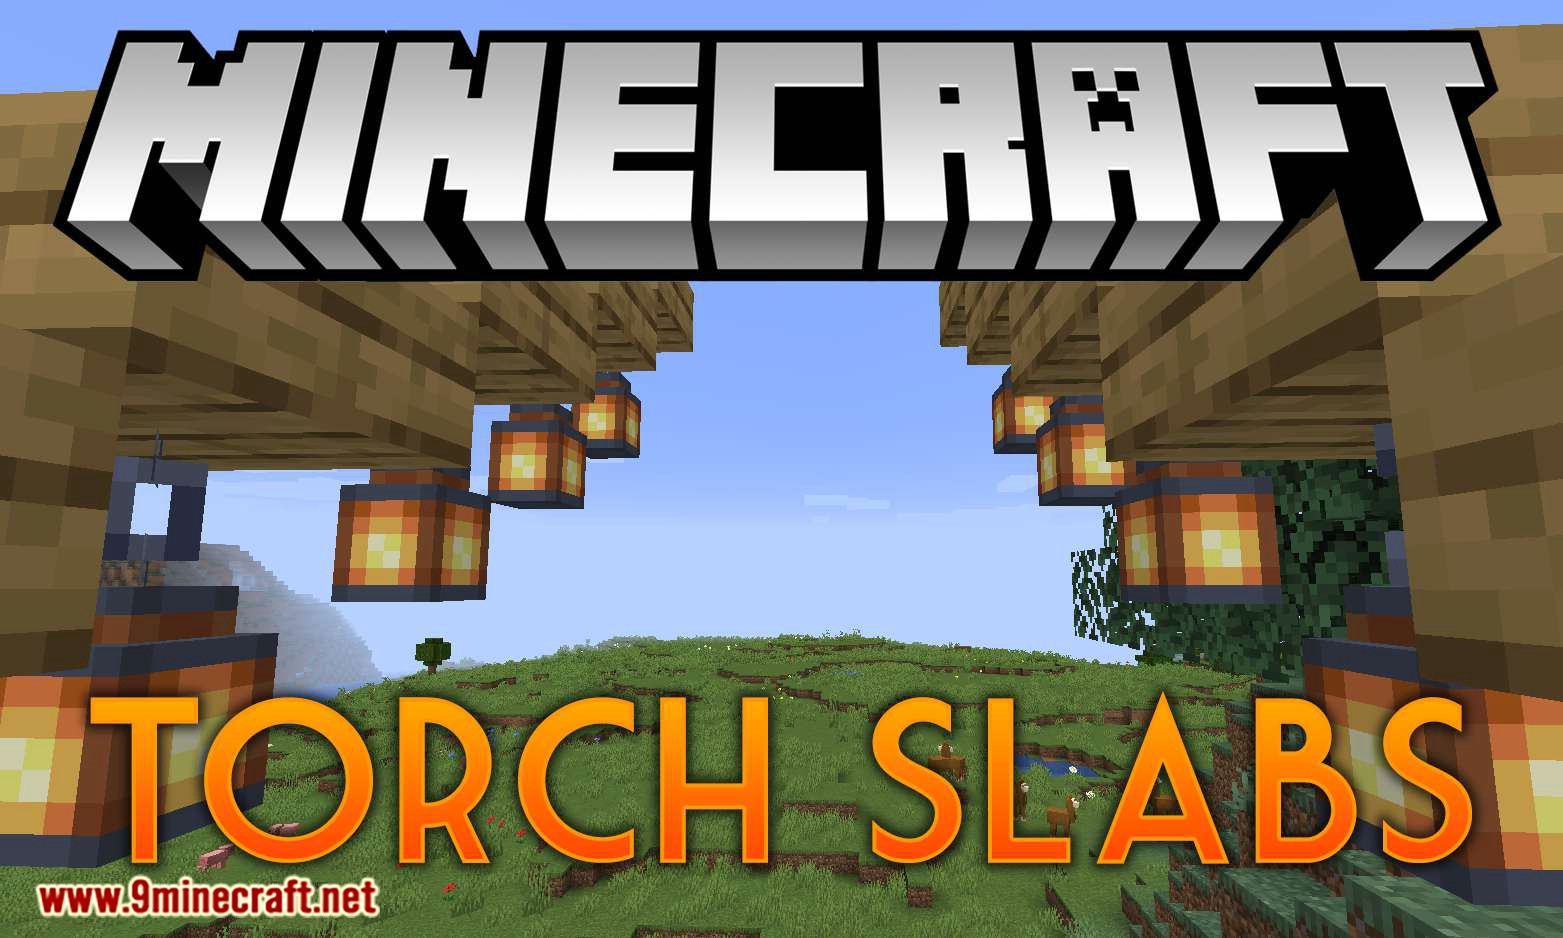 Torch Slabs Mod for minecraft logo